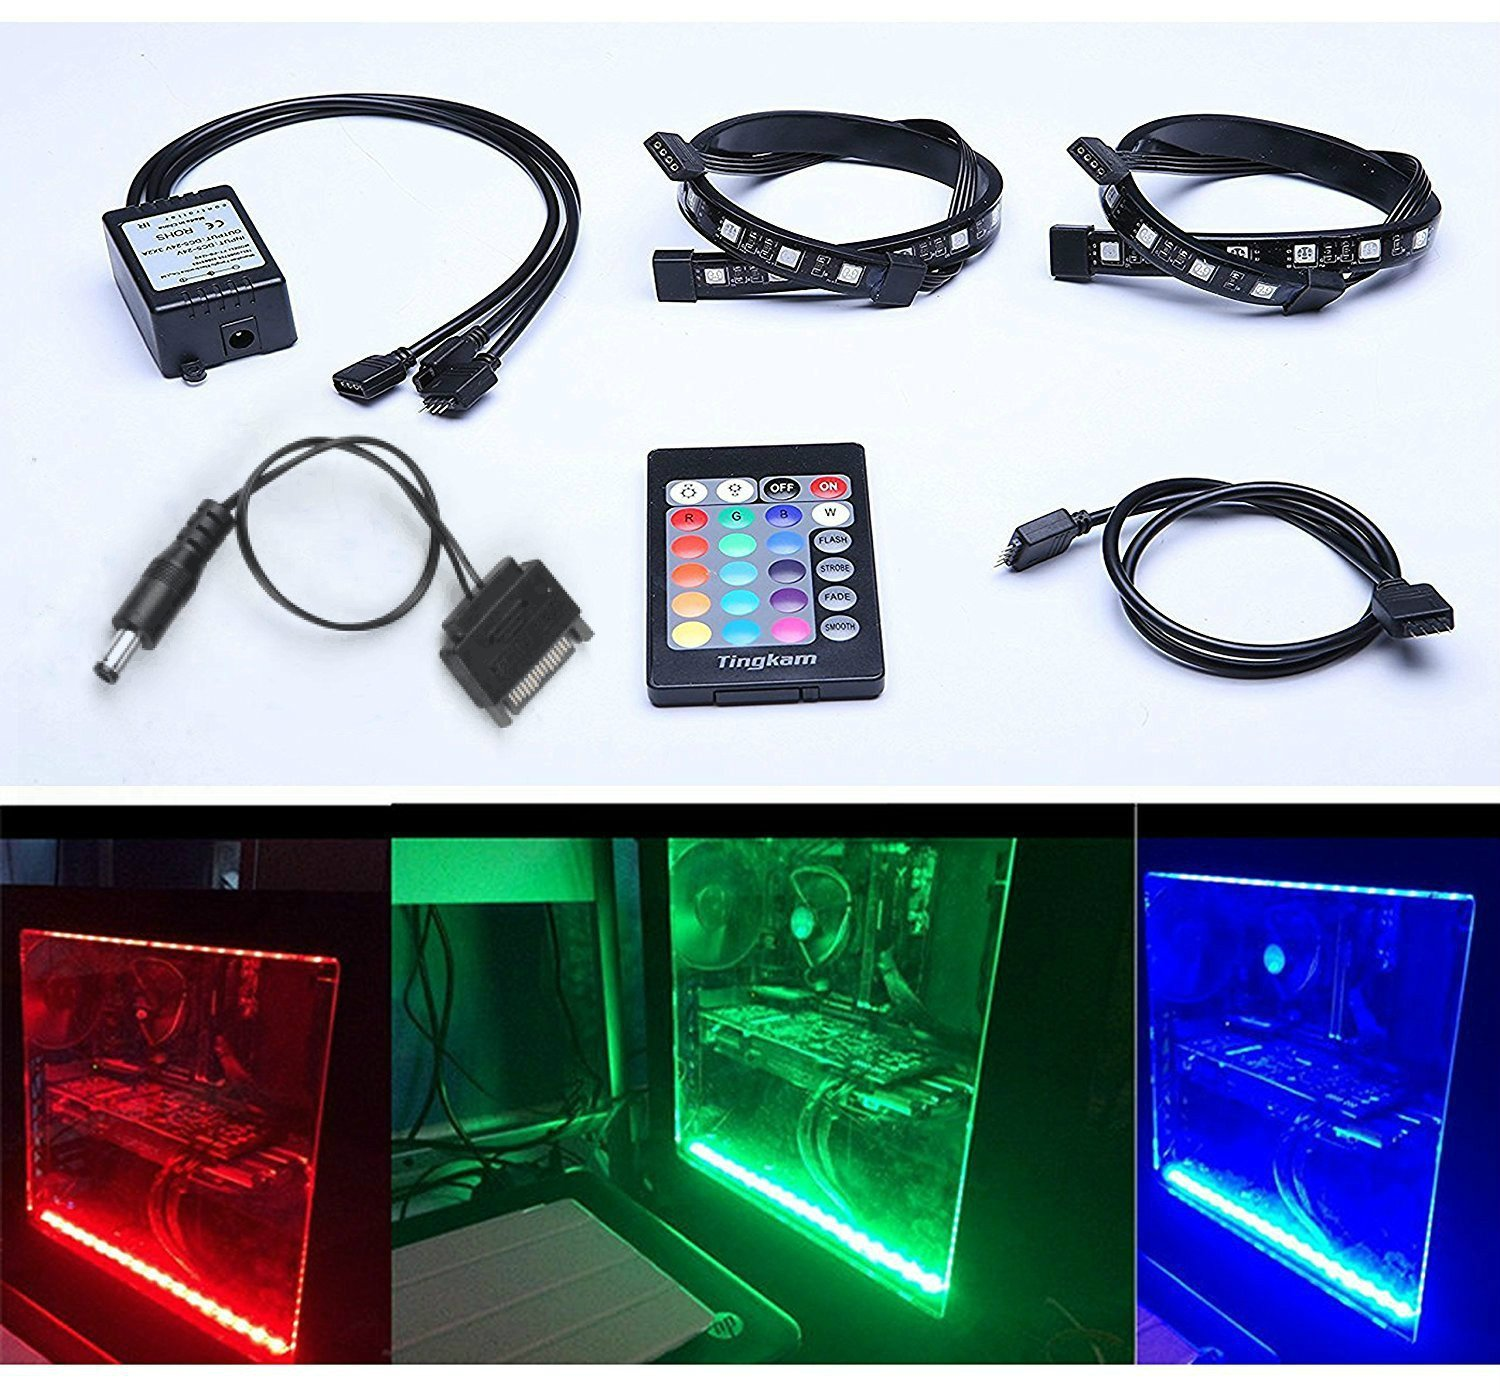 Tingkam Full Kit RGB 5050 SMD 2pcs 18leds 30cm LED Strip Light Attached to Your PC Case via Magnet with 24 key Remote Controller for Desktop Computer Mid Tower Case (The 2nd Generation) by Tingkam (Image #1)